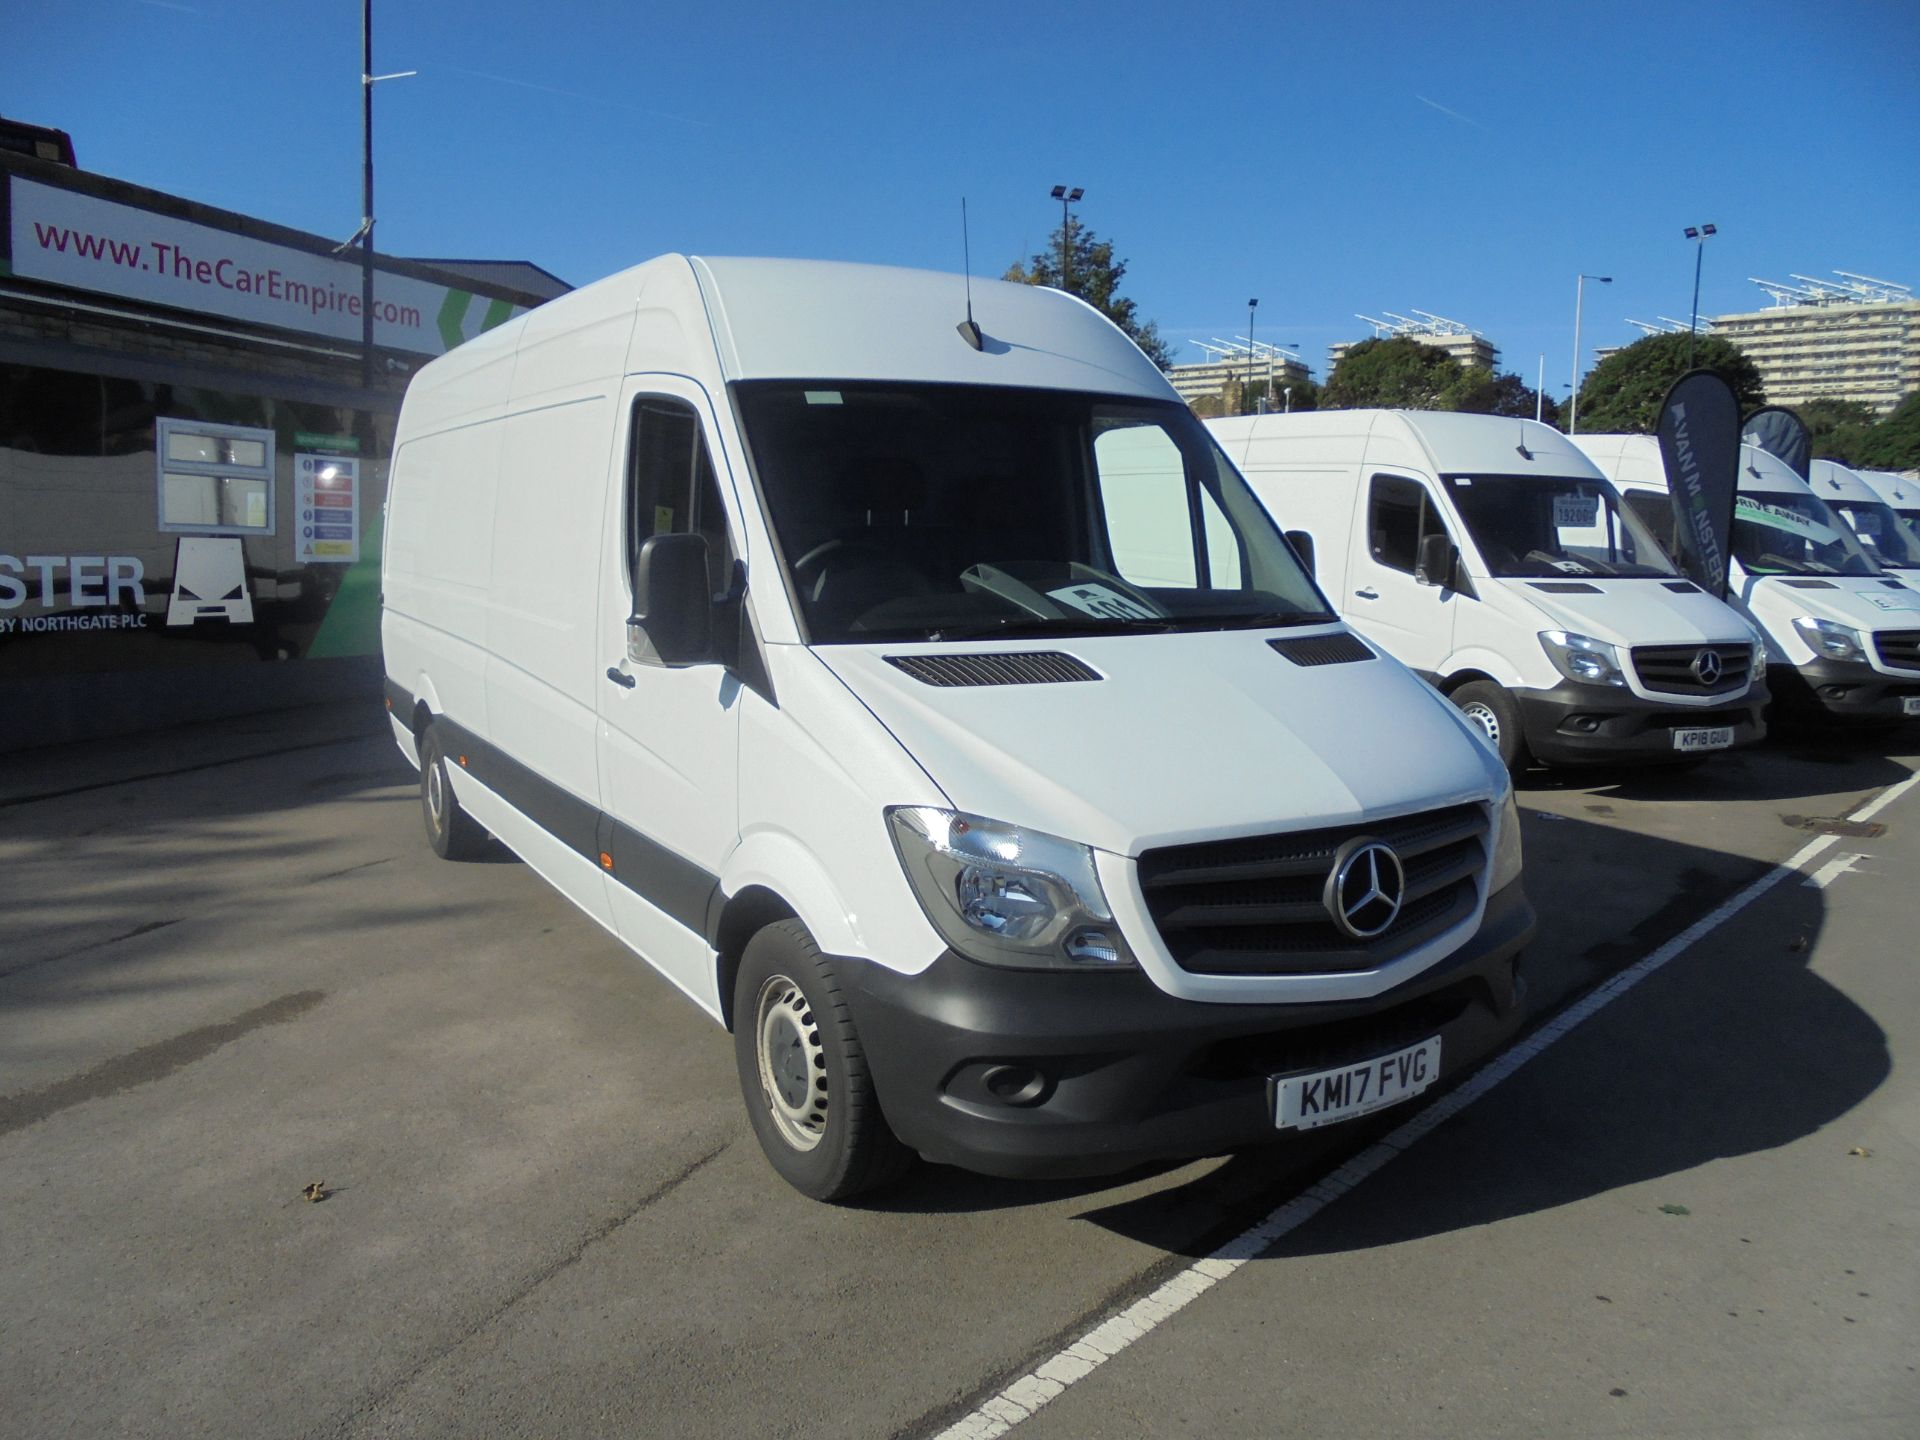 2017 Mercedes-Benz Sprinter 3.5T High Roof Van (KM17FVG)